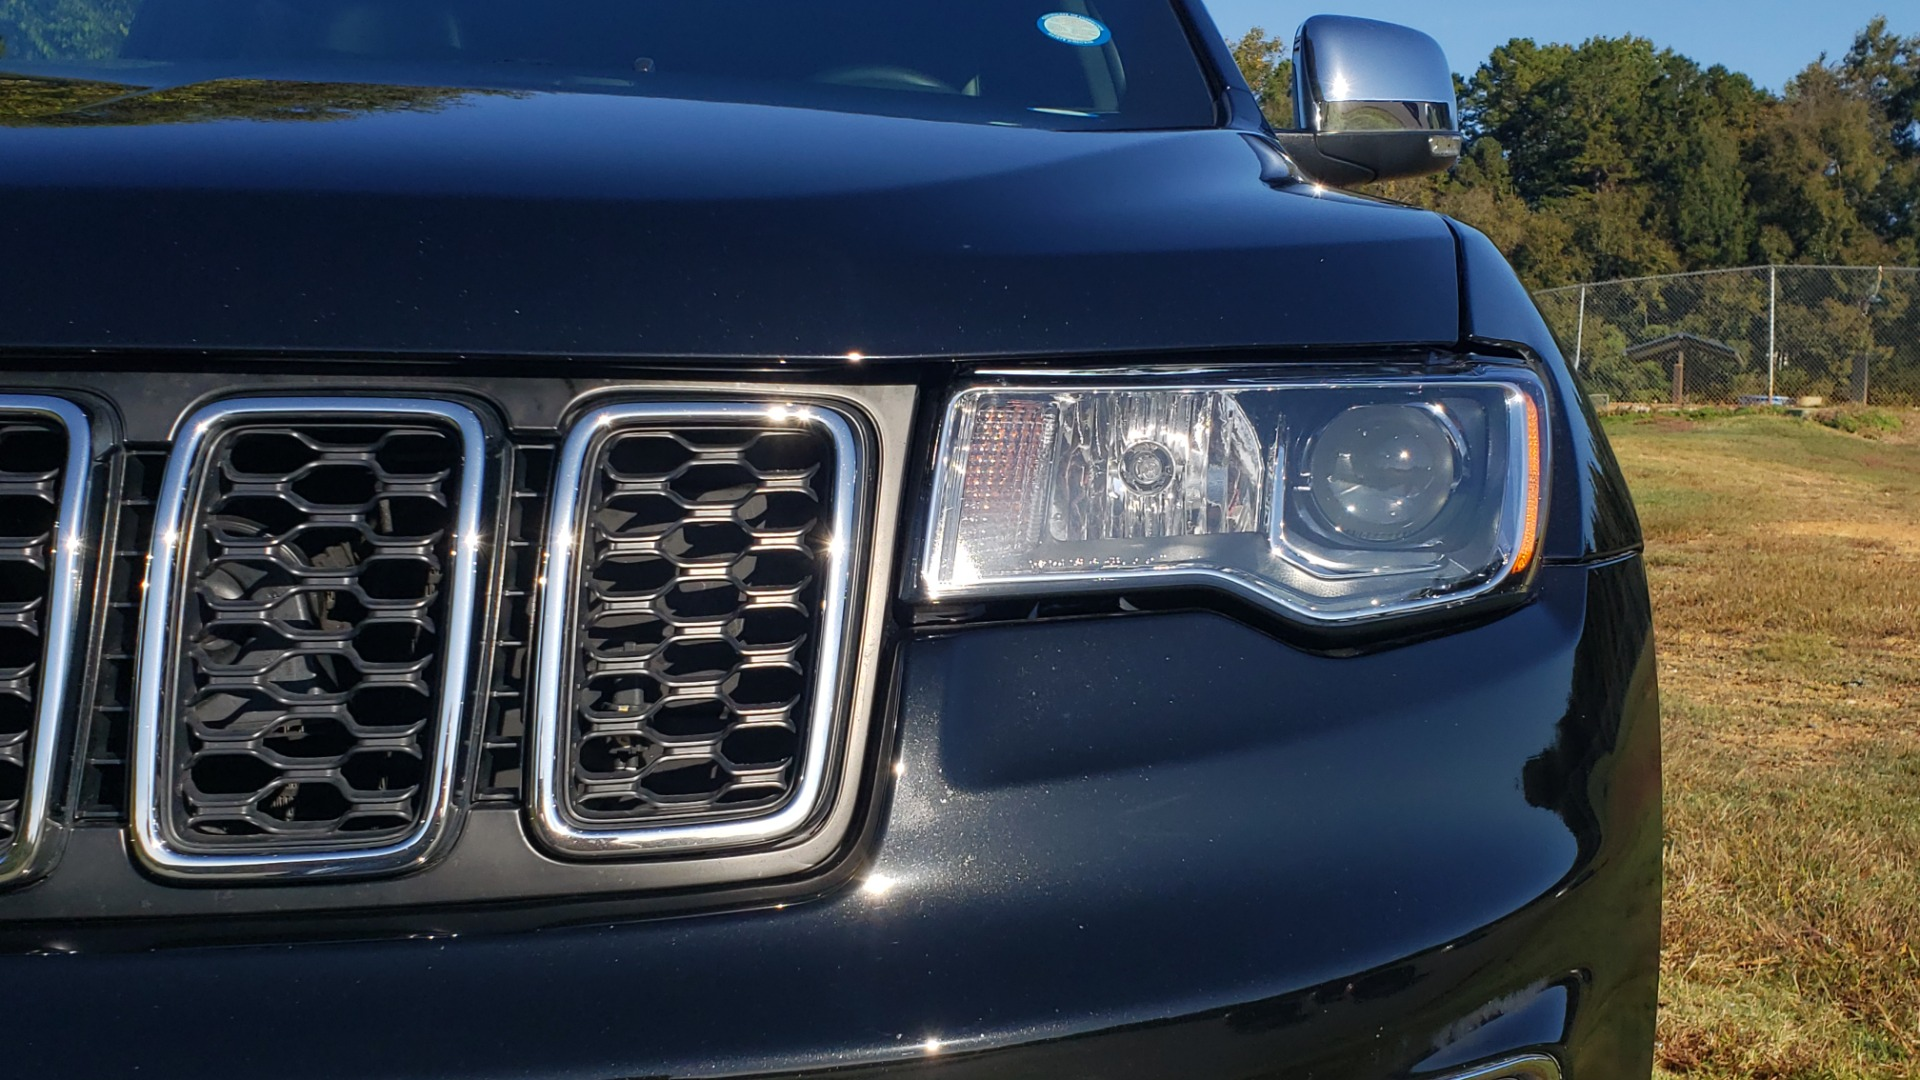 Used 2019 Jeep GRAND CHEROKEE LIMITED 4X4 / NAV / SUNROOF / BLIND SPOT MONITOR / REARVIEW for sale Sold at Formula Imports in Charlotte NC 28227 13